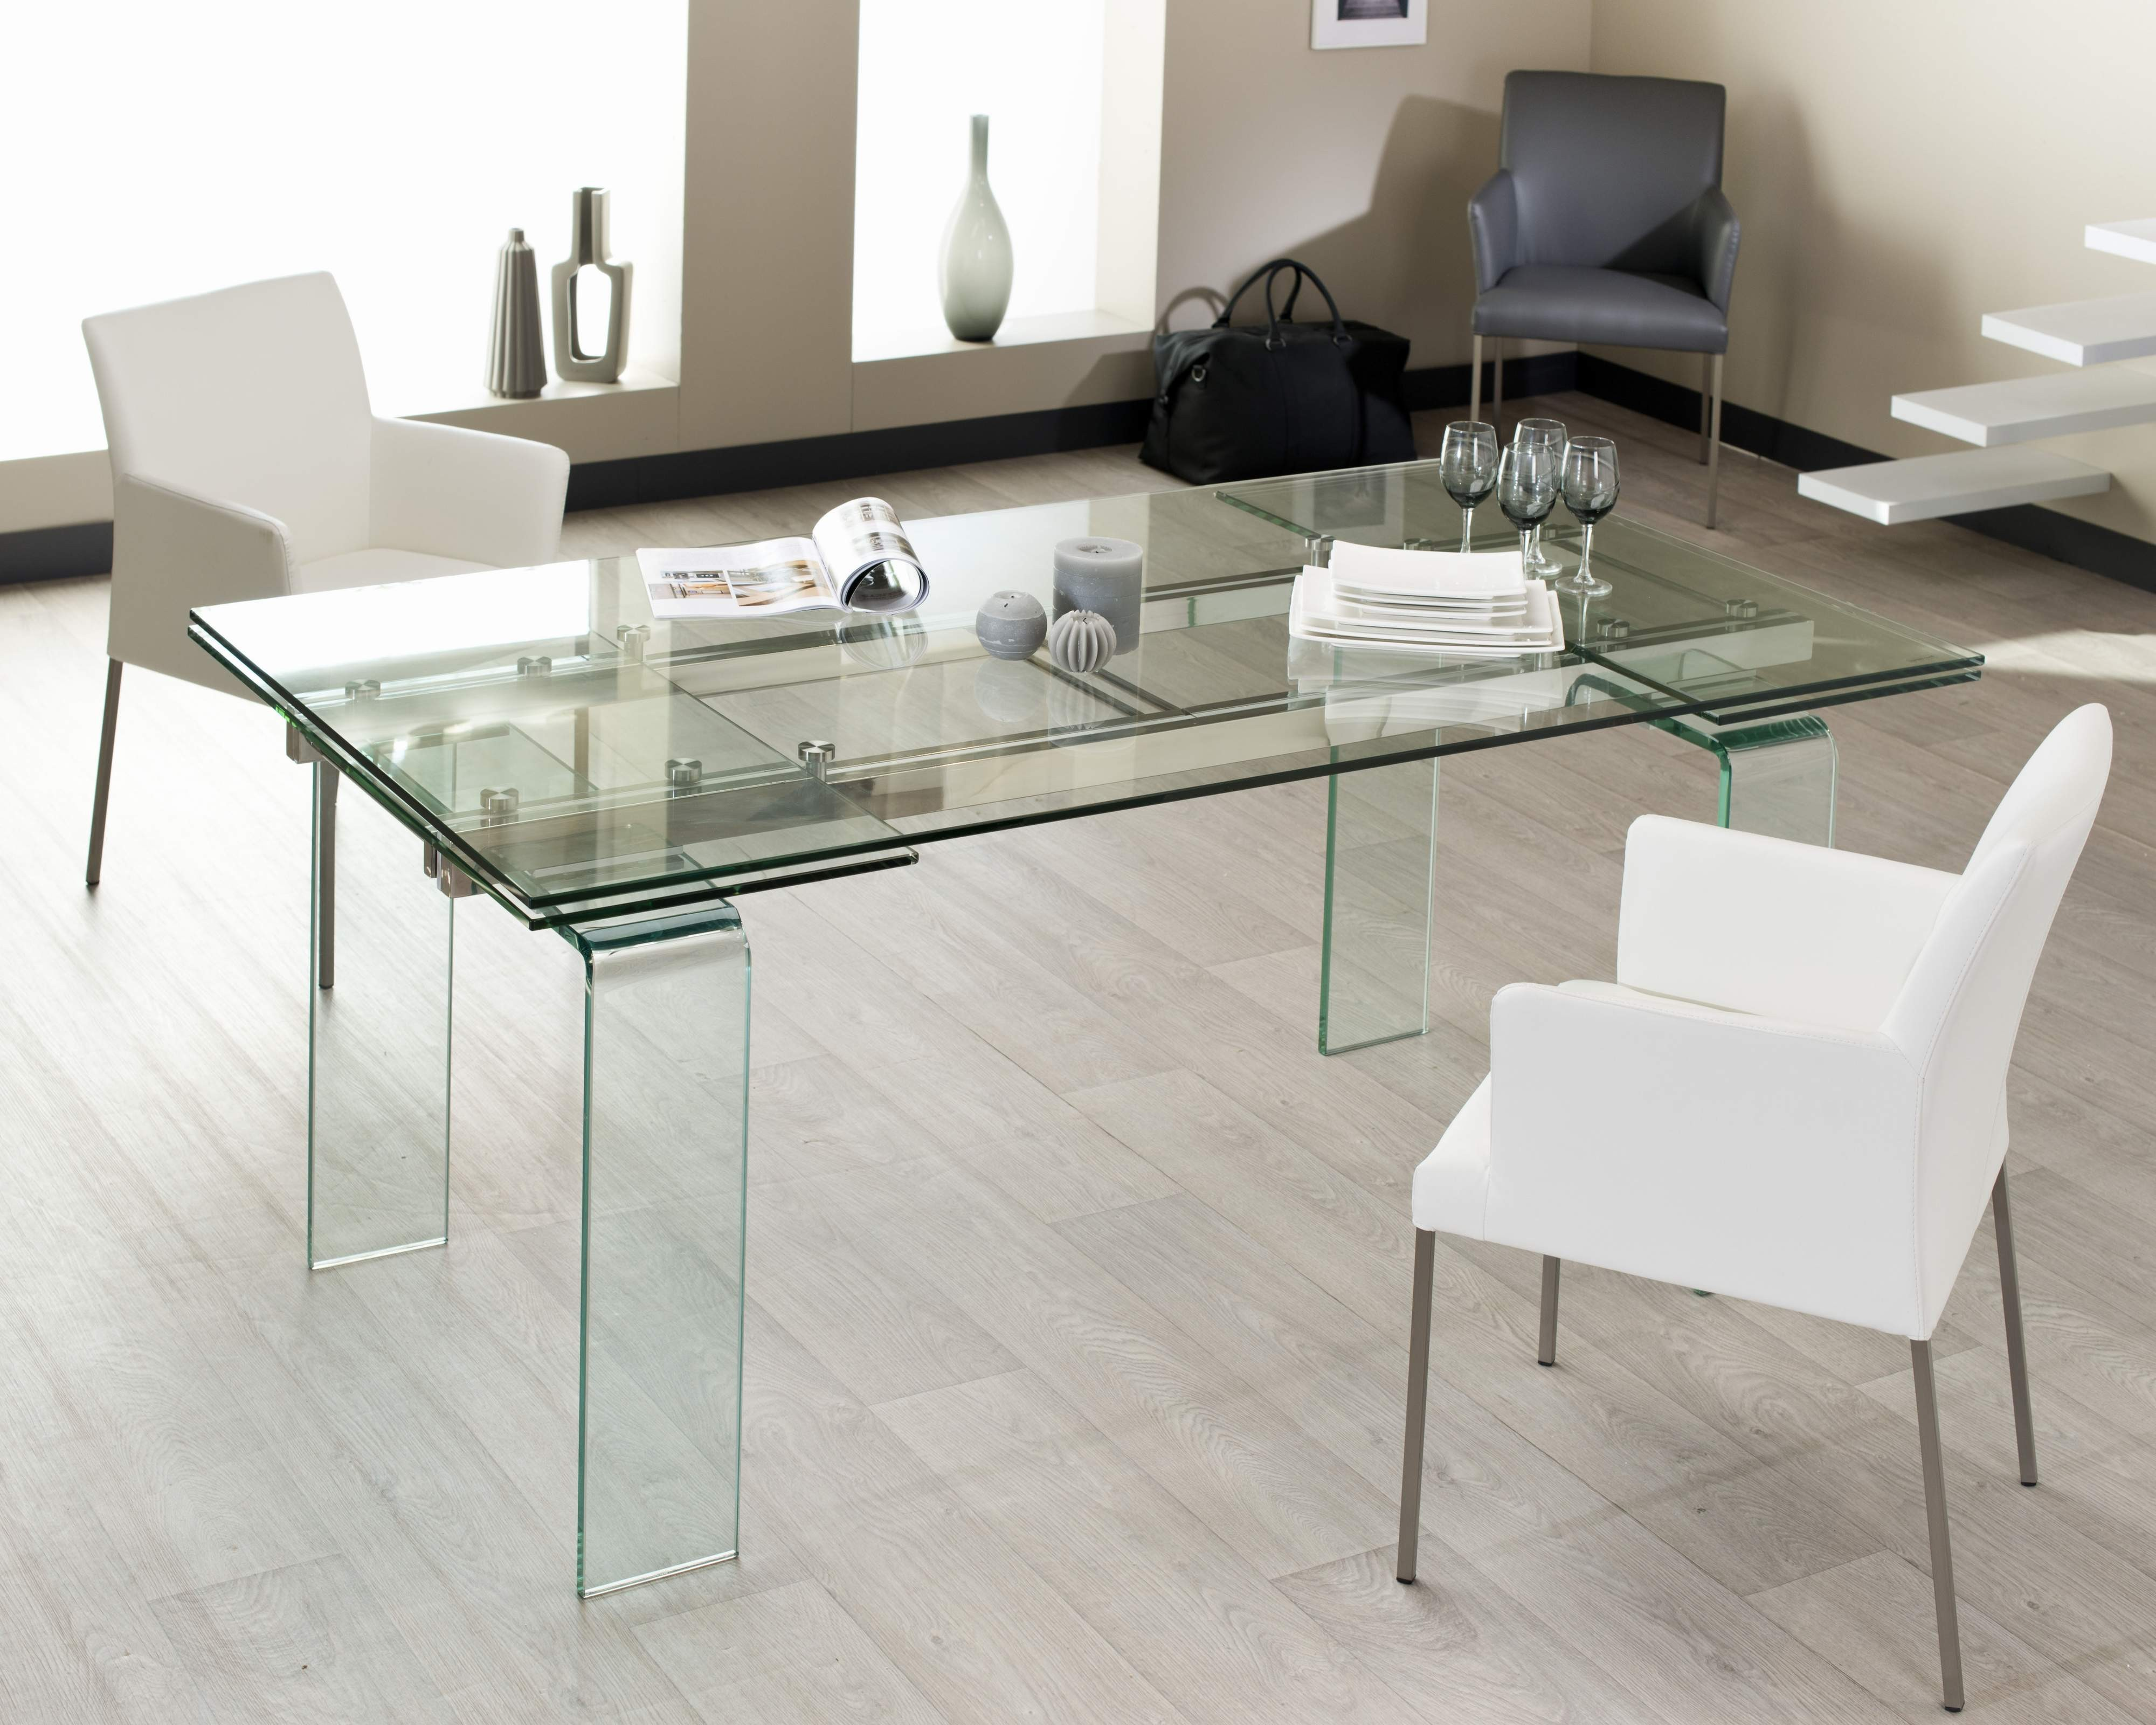 Table de salle a manger quartz verre 160 260 cm - Solde table a manger ...